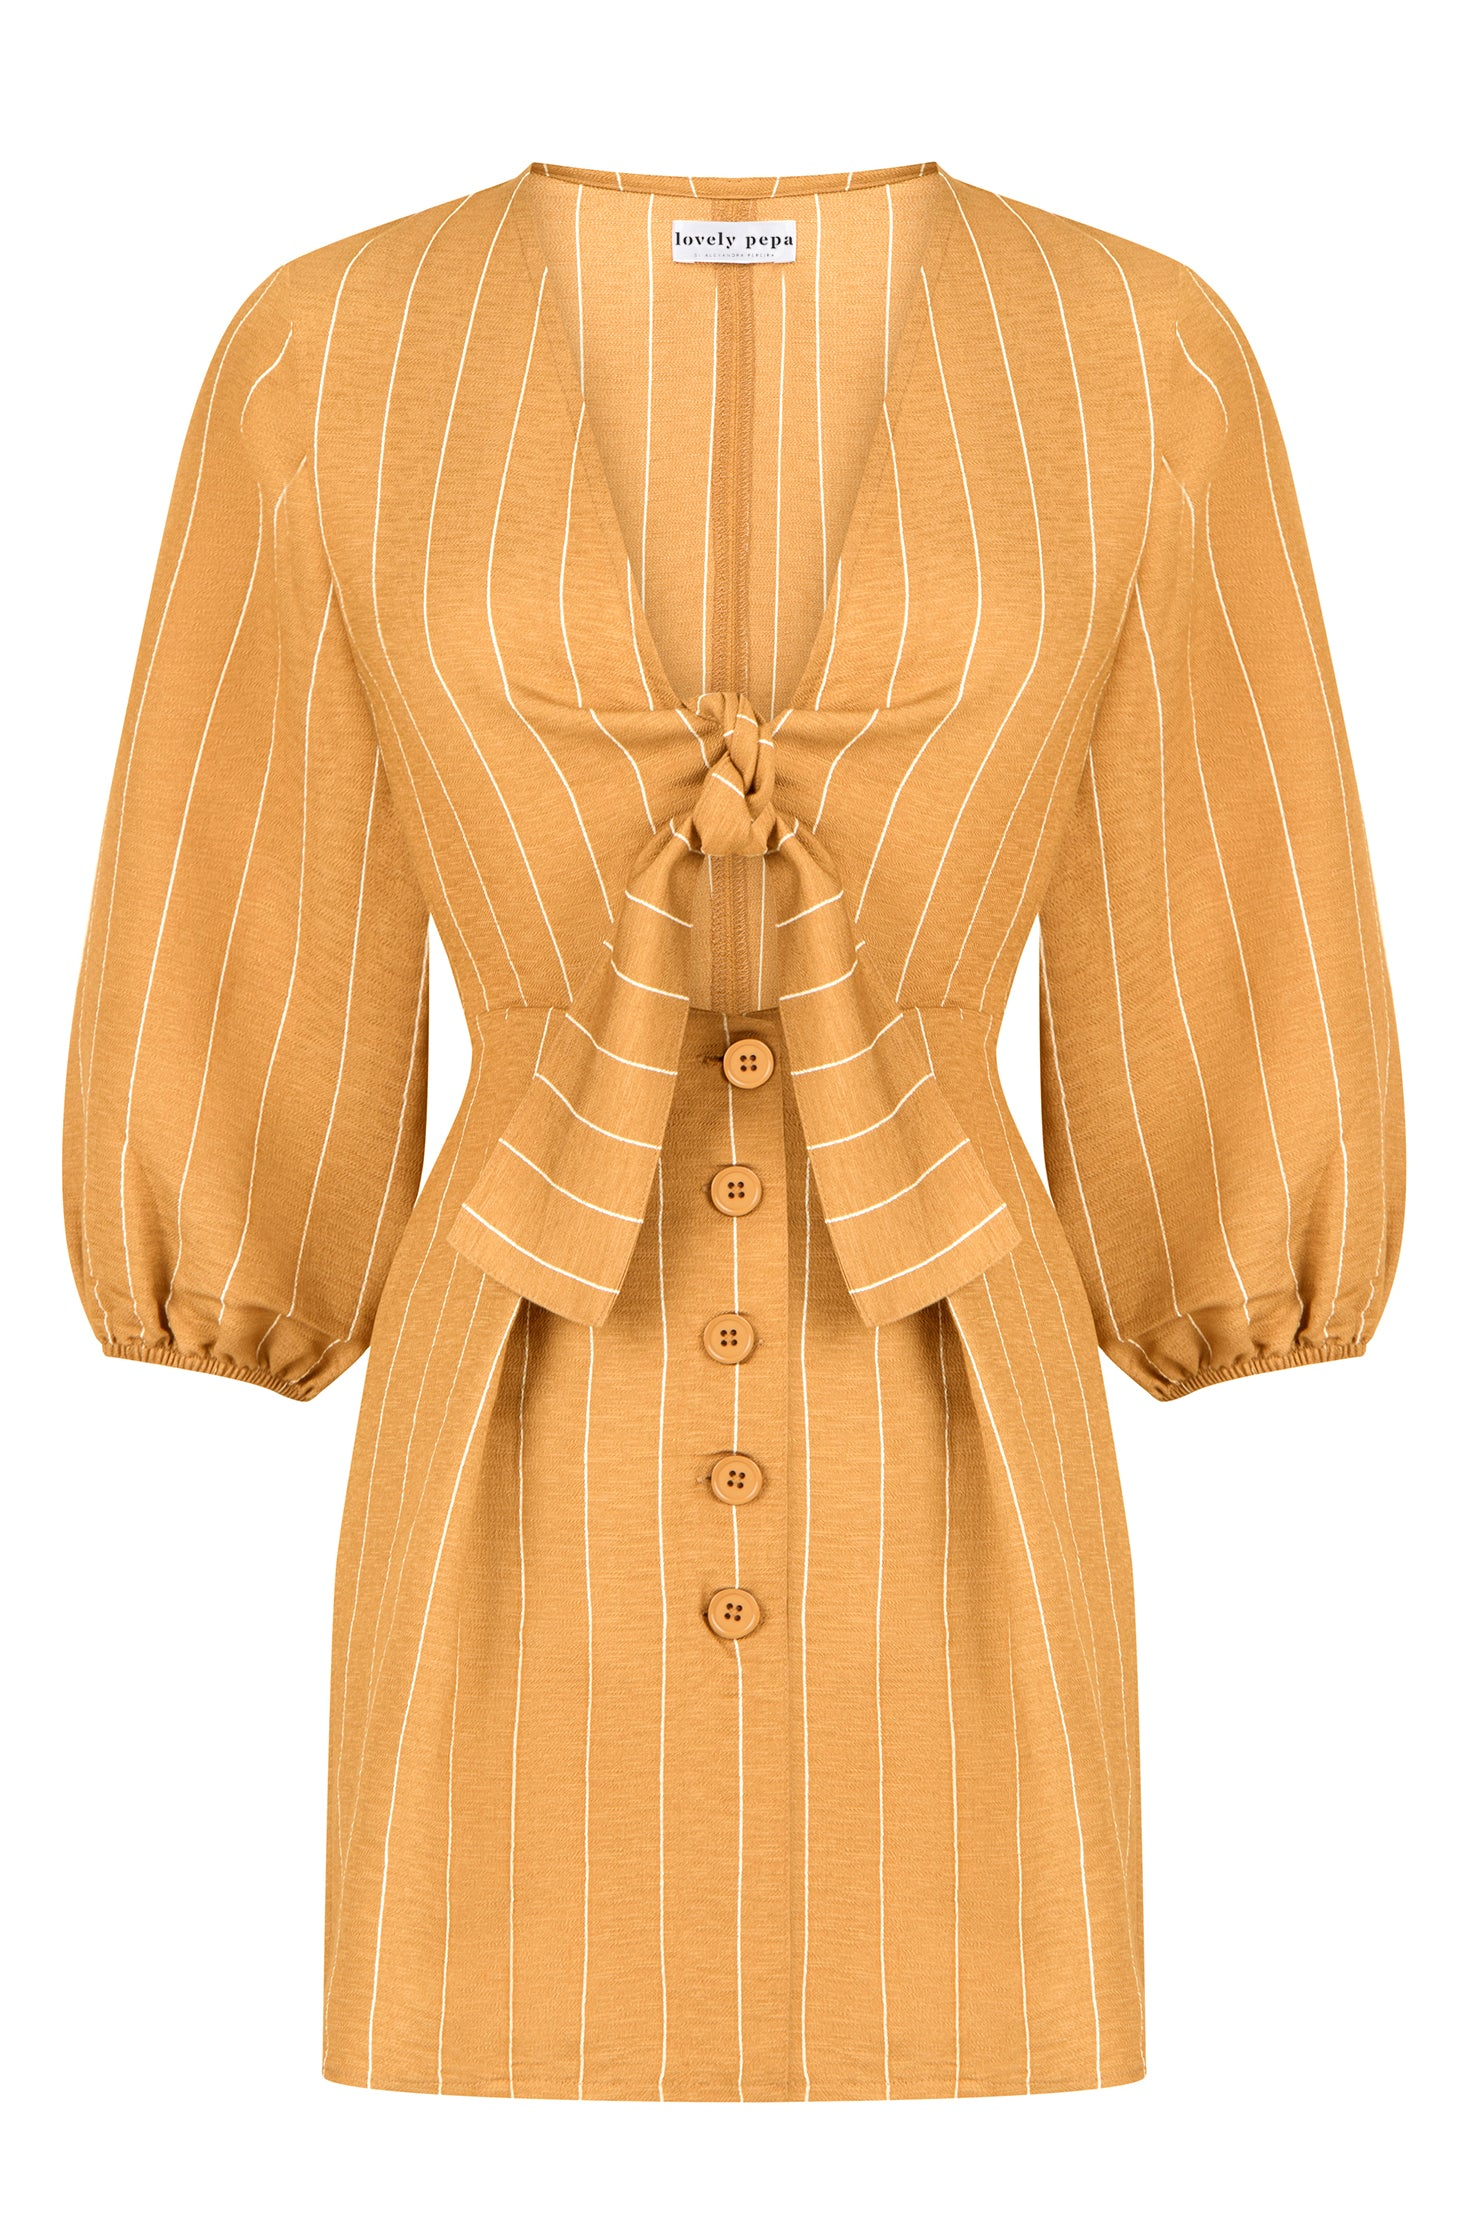 Addison Dress - Beige